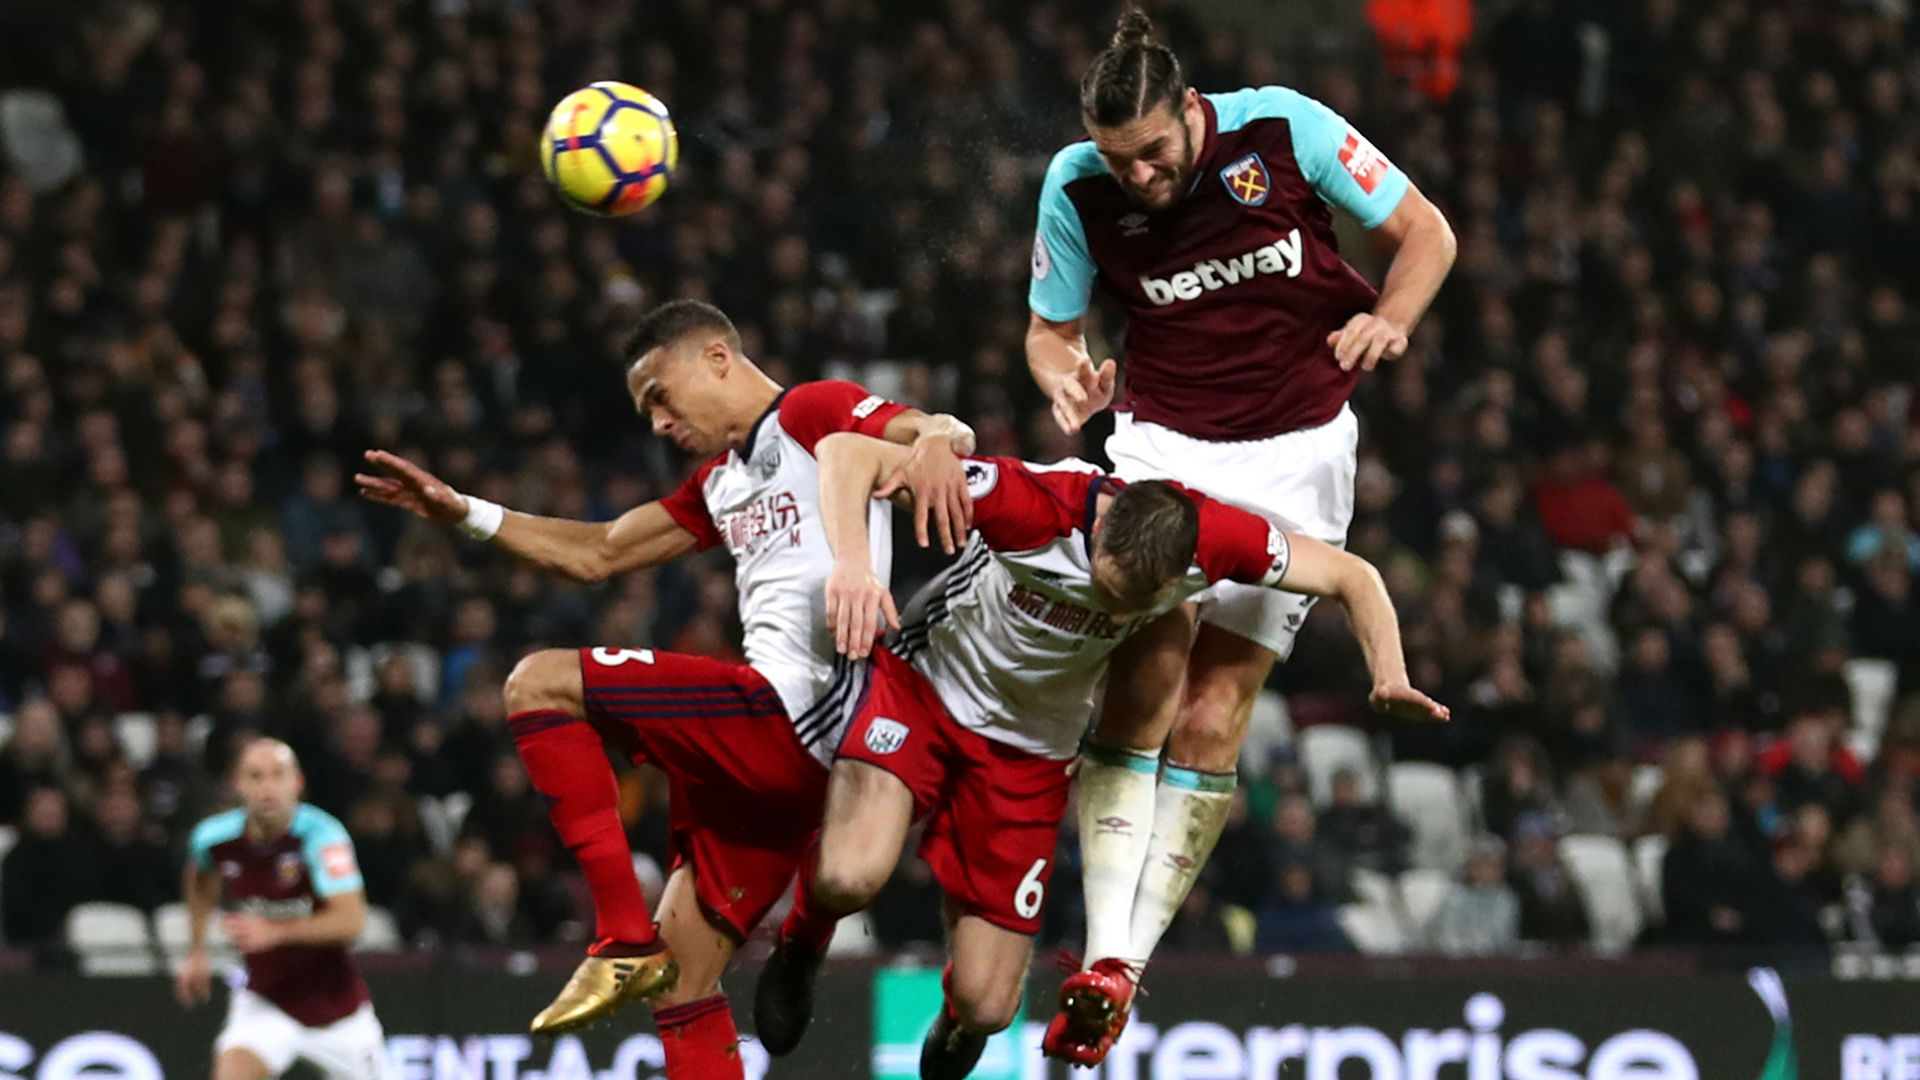 West Ham United 2-1 West Bromwich Albion : Five Things we Learned